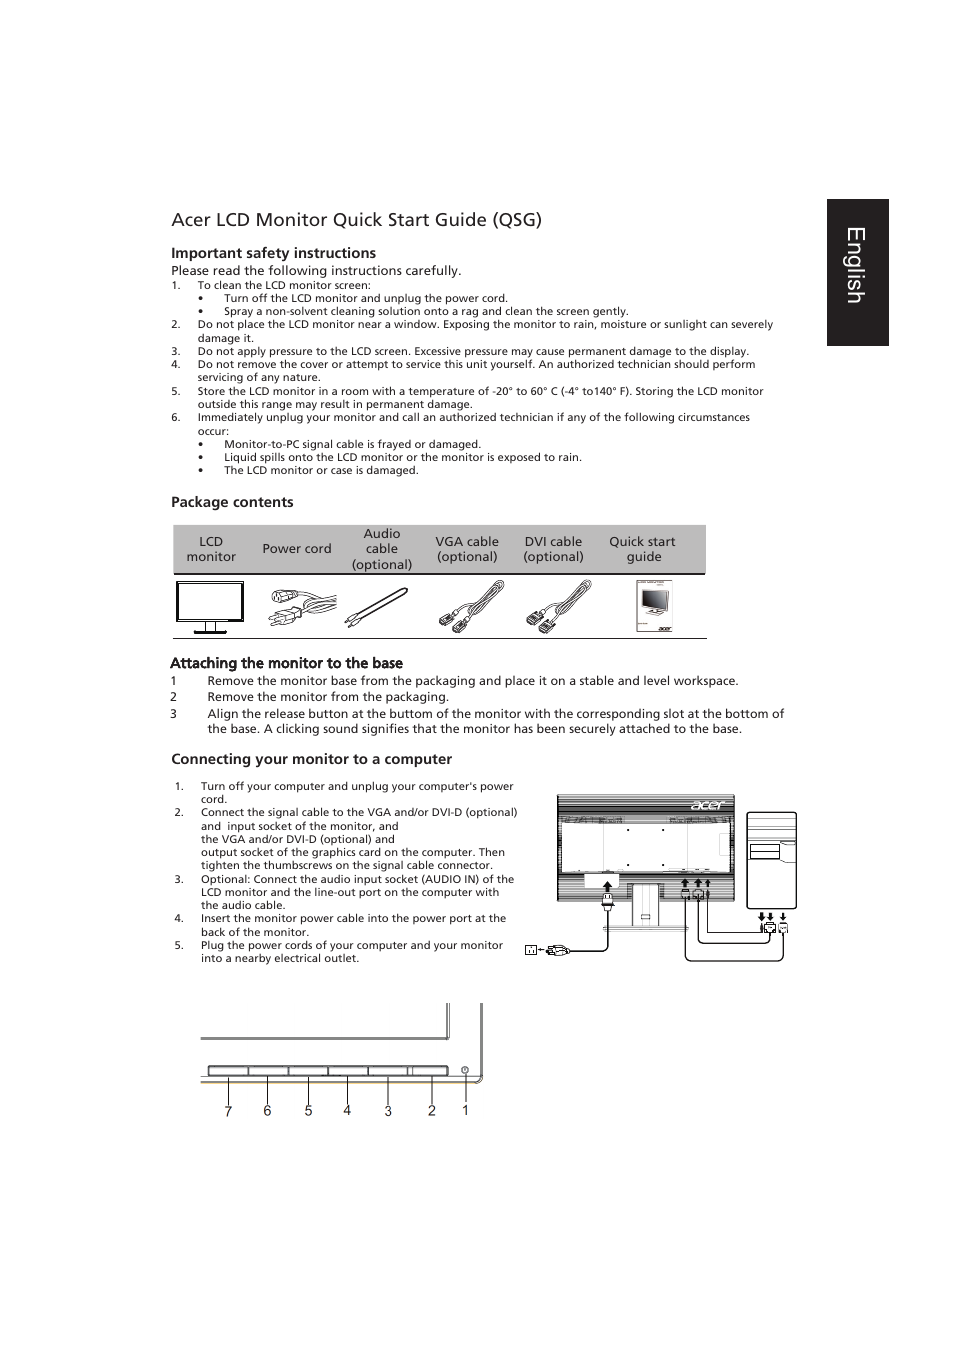 Exelent pc monitor port wiring diagram ensign wiring diagram ideas unique dvi to vga wiring diagram pictures electrical system block asfbconference2016 Choice Image